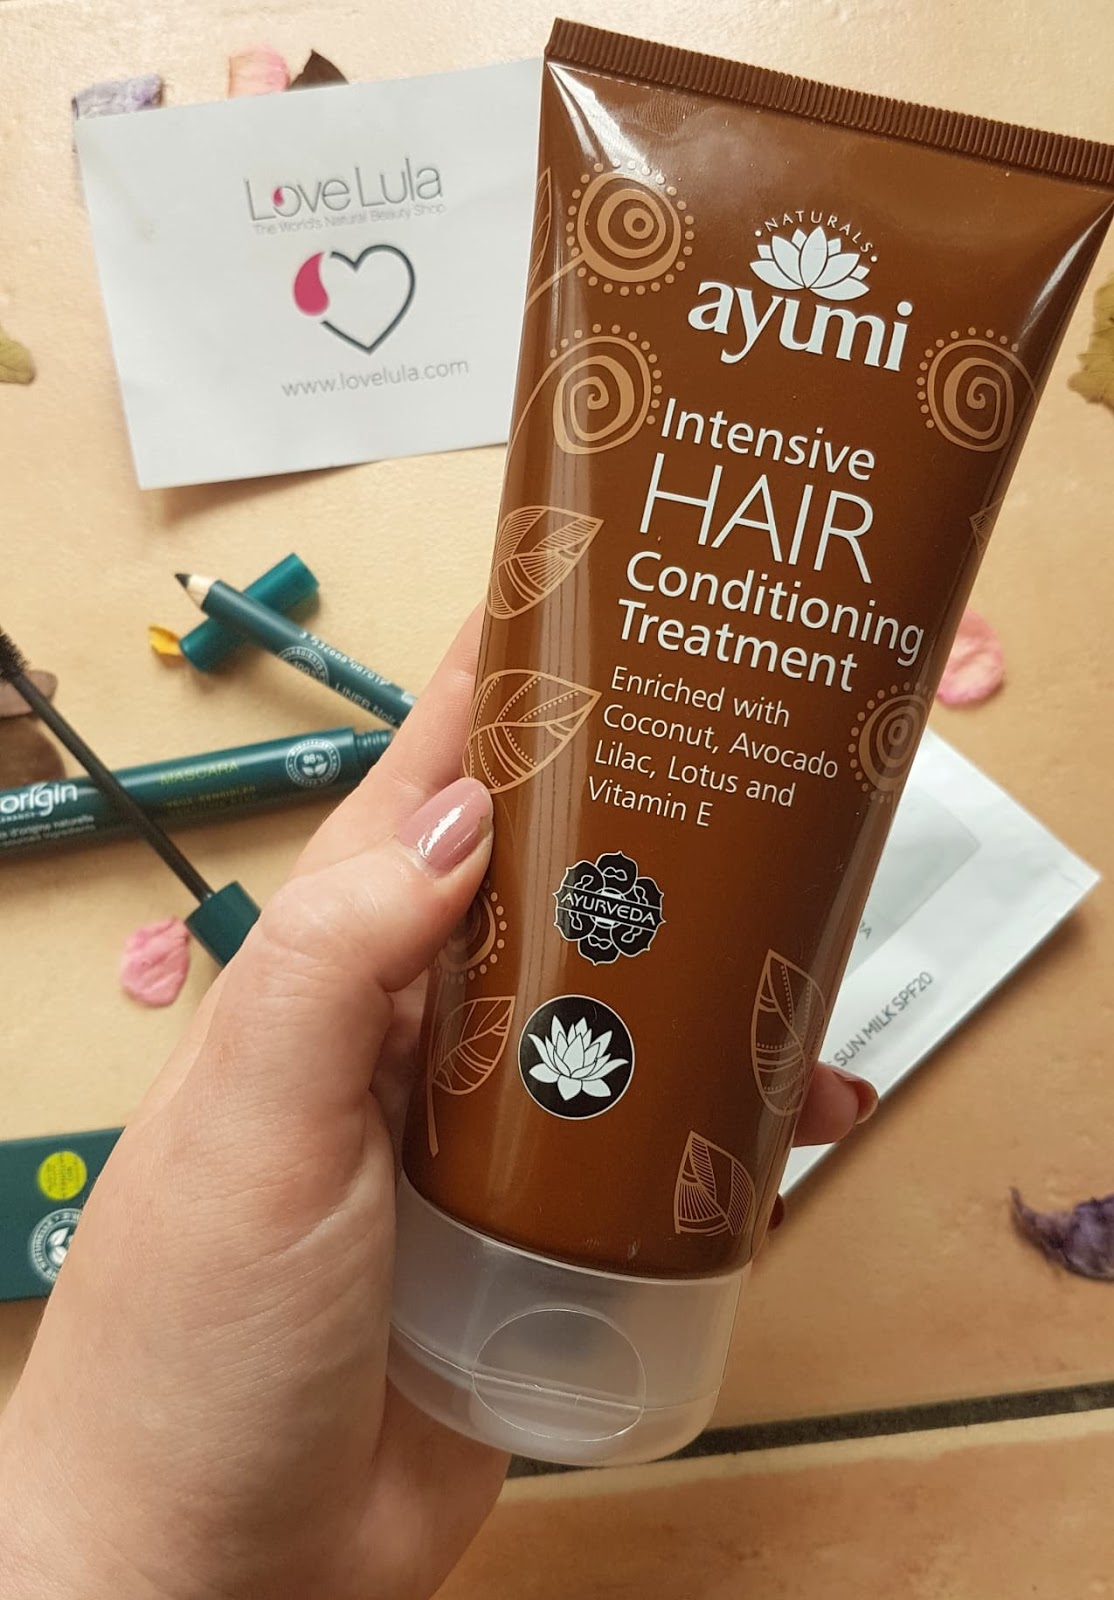 Love Lula Beauty Box - Ayumi Intensive Hair Conditioning Treatment Review